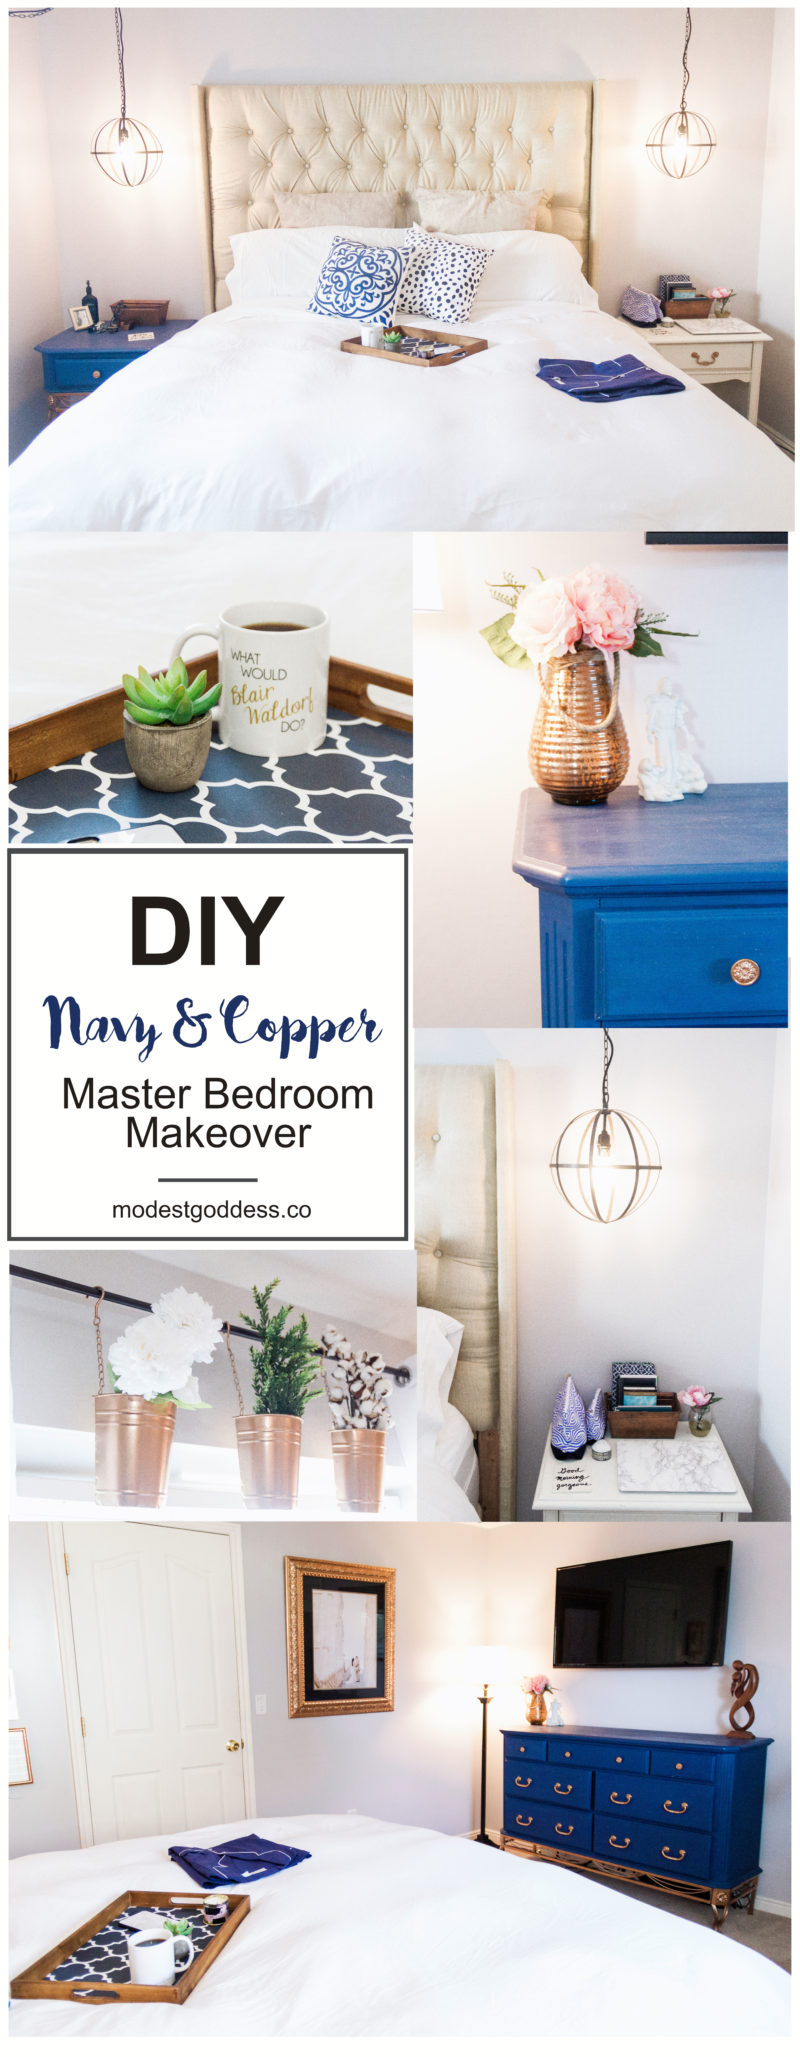 """My Master Bedroom Tour"" DIY Navy & Copper Master Bedroom Makeover"